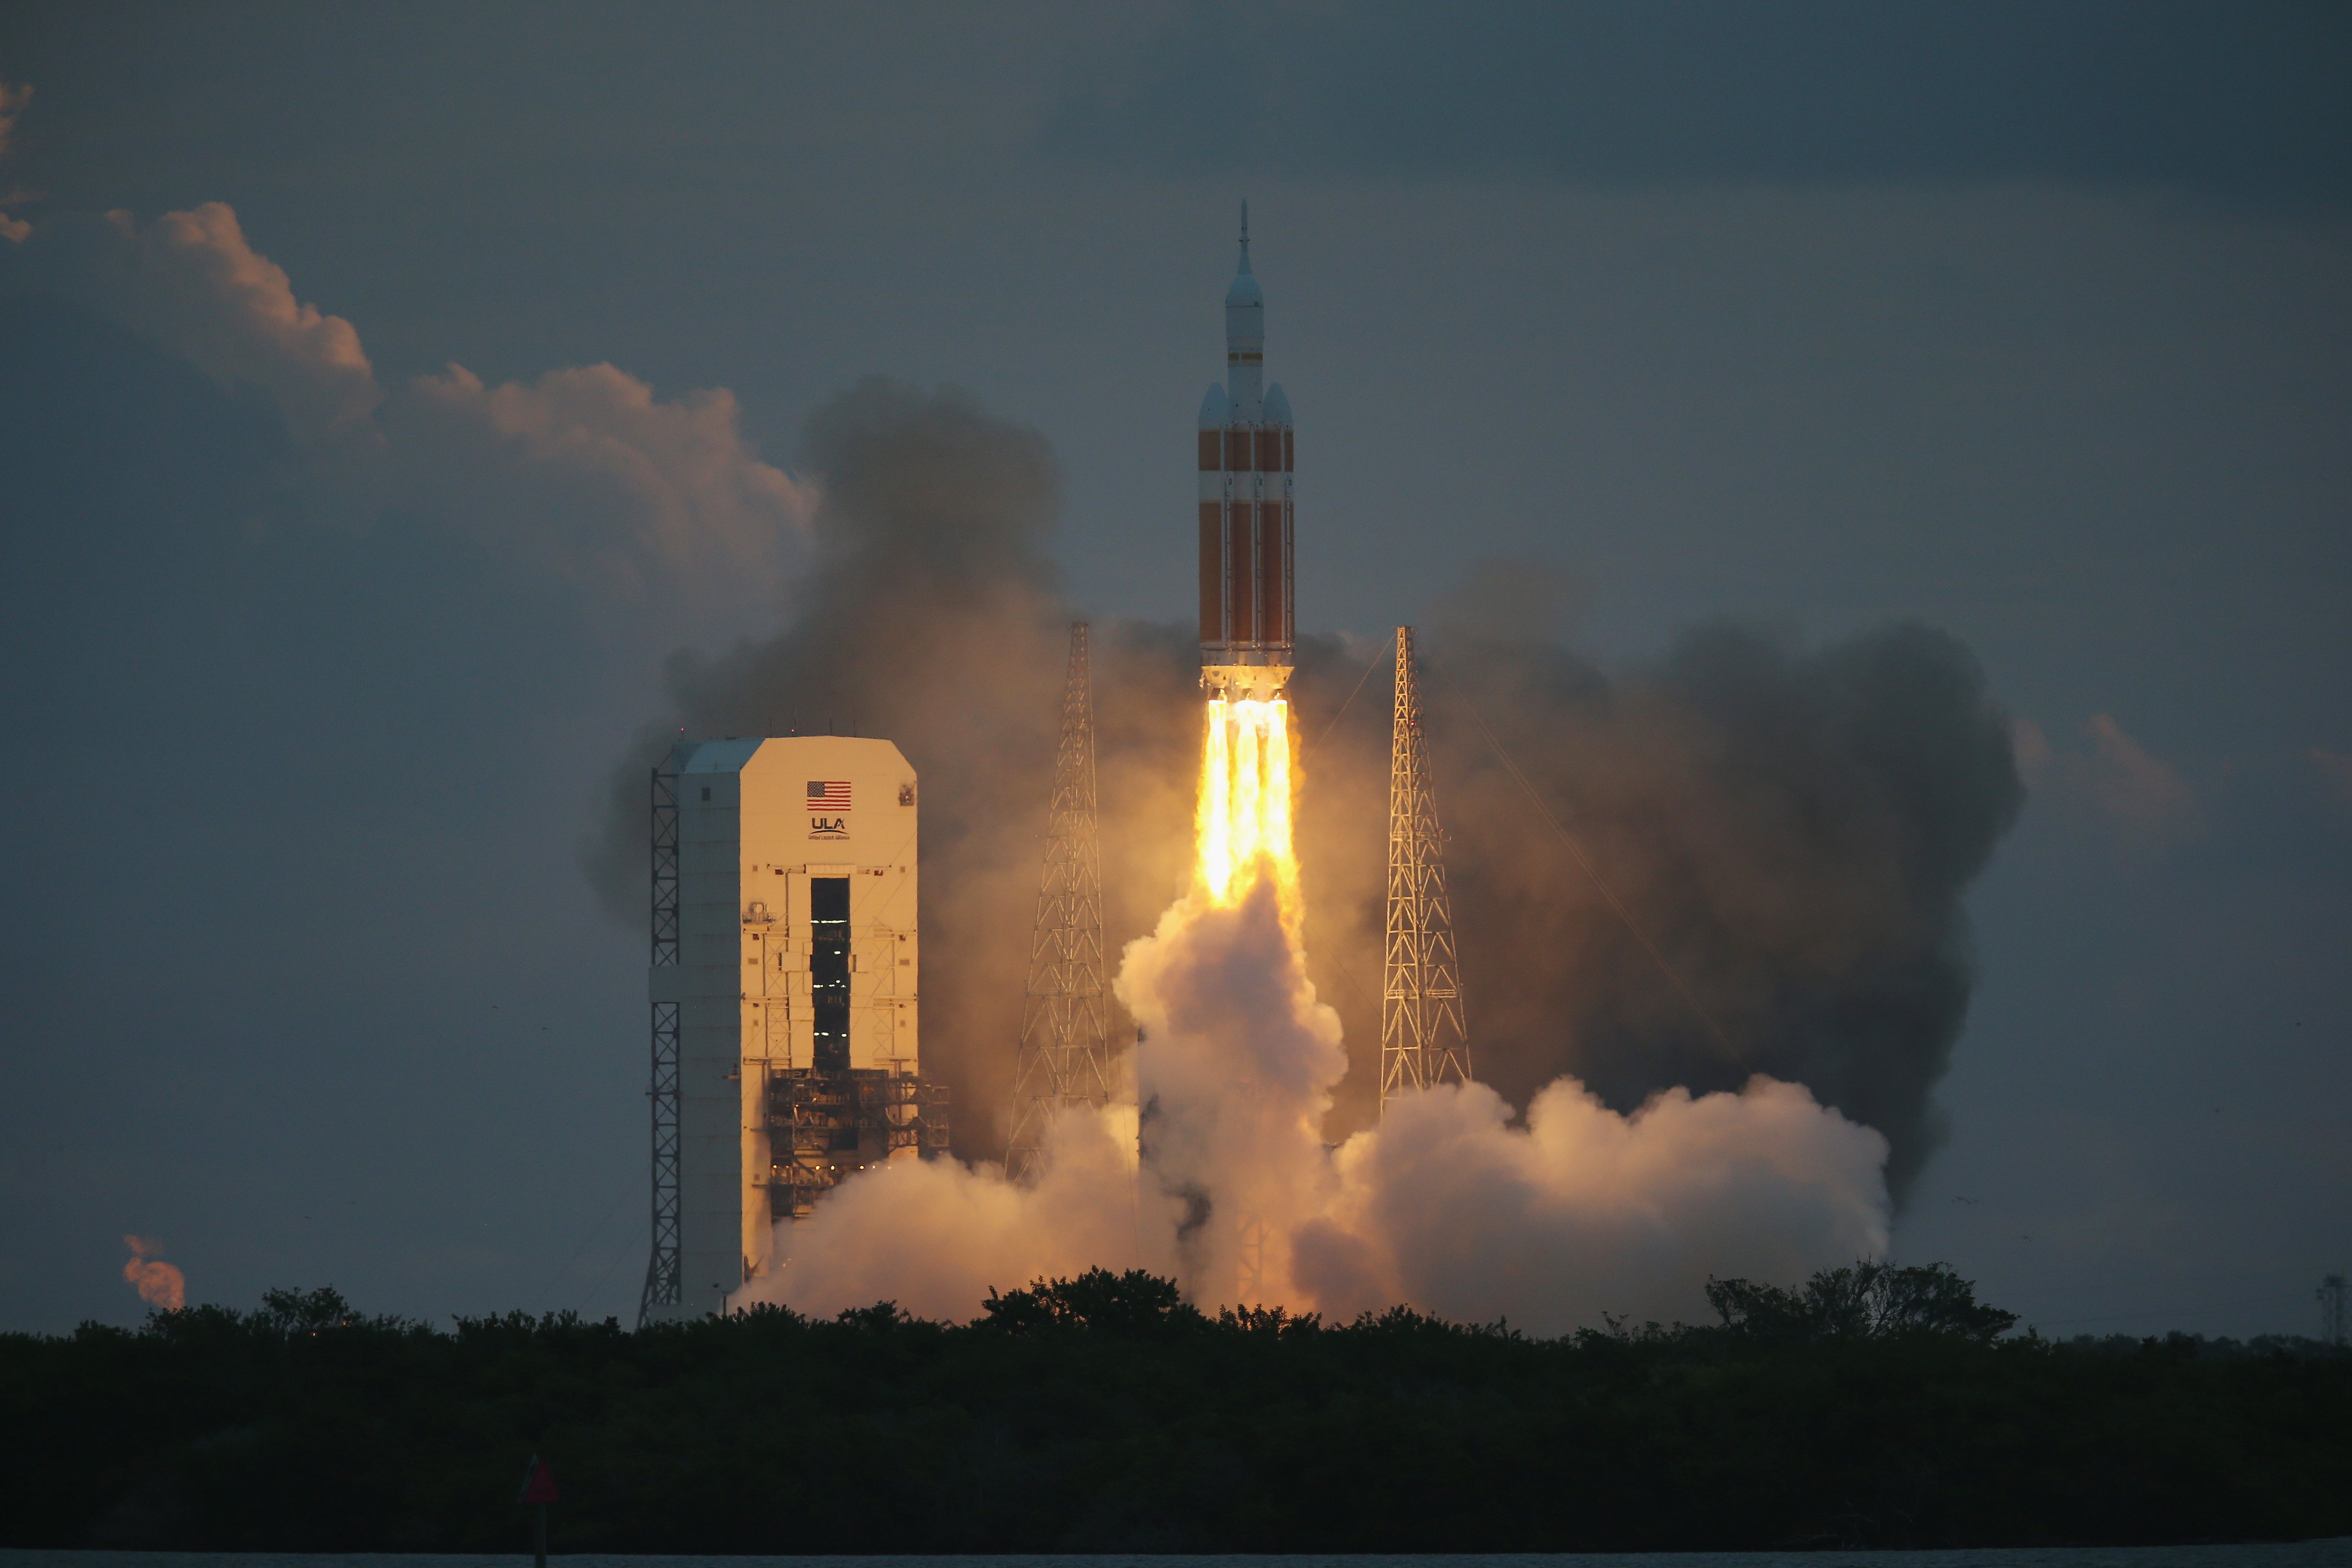 The United Launch Alliance Delta 4 rocket carrying NASA's first Orion deep space exploration craft takes off from its launchpad on December 5, 2014 in Cape Canaveral, Florida.  The heavy-lift rocket will boost the unmanned Orion capsule to an altitude of 3,600 miles, and returning for a splashdown west of Baja California after a four and half hour flight.  (Photo by Joe Raedle/Getty Images)